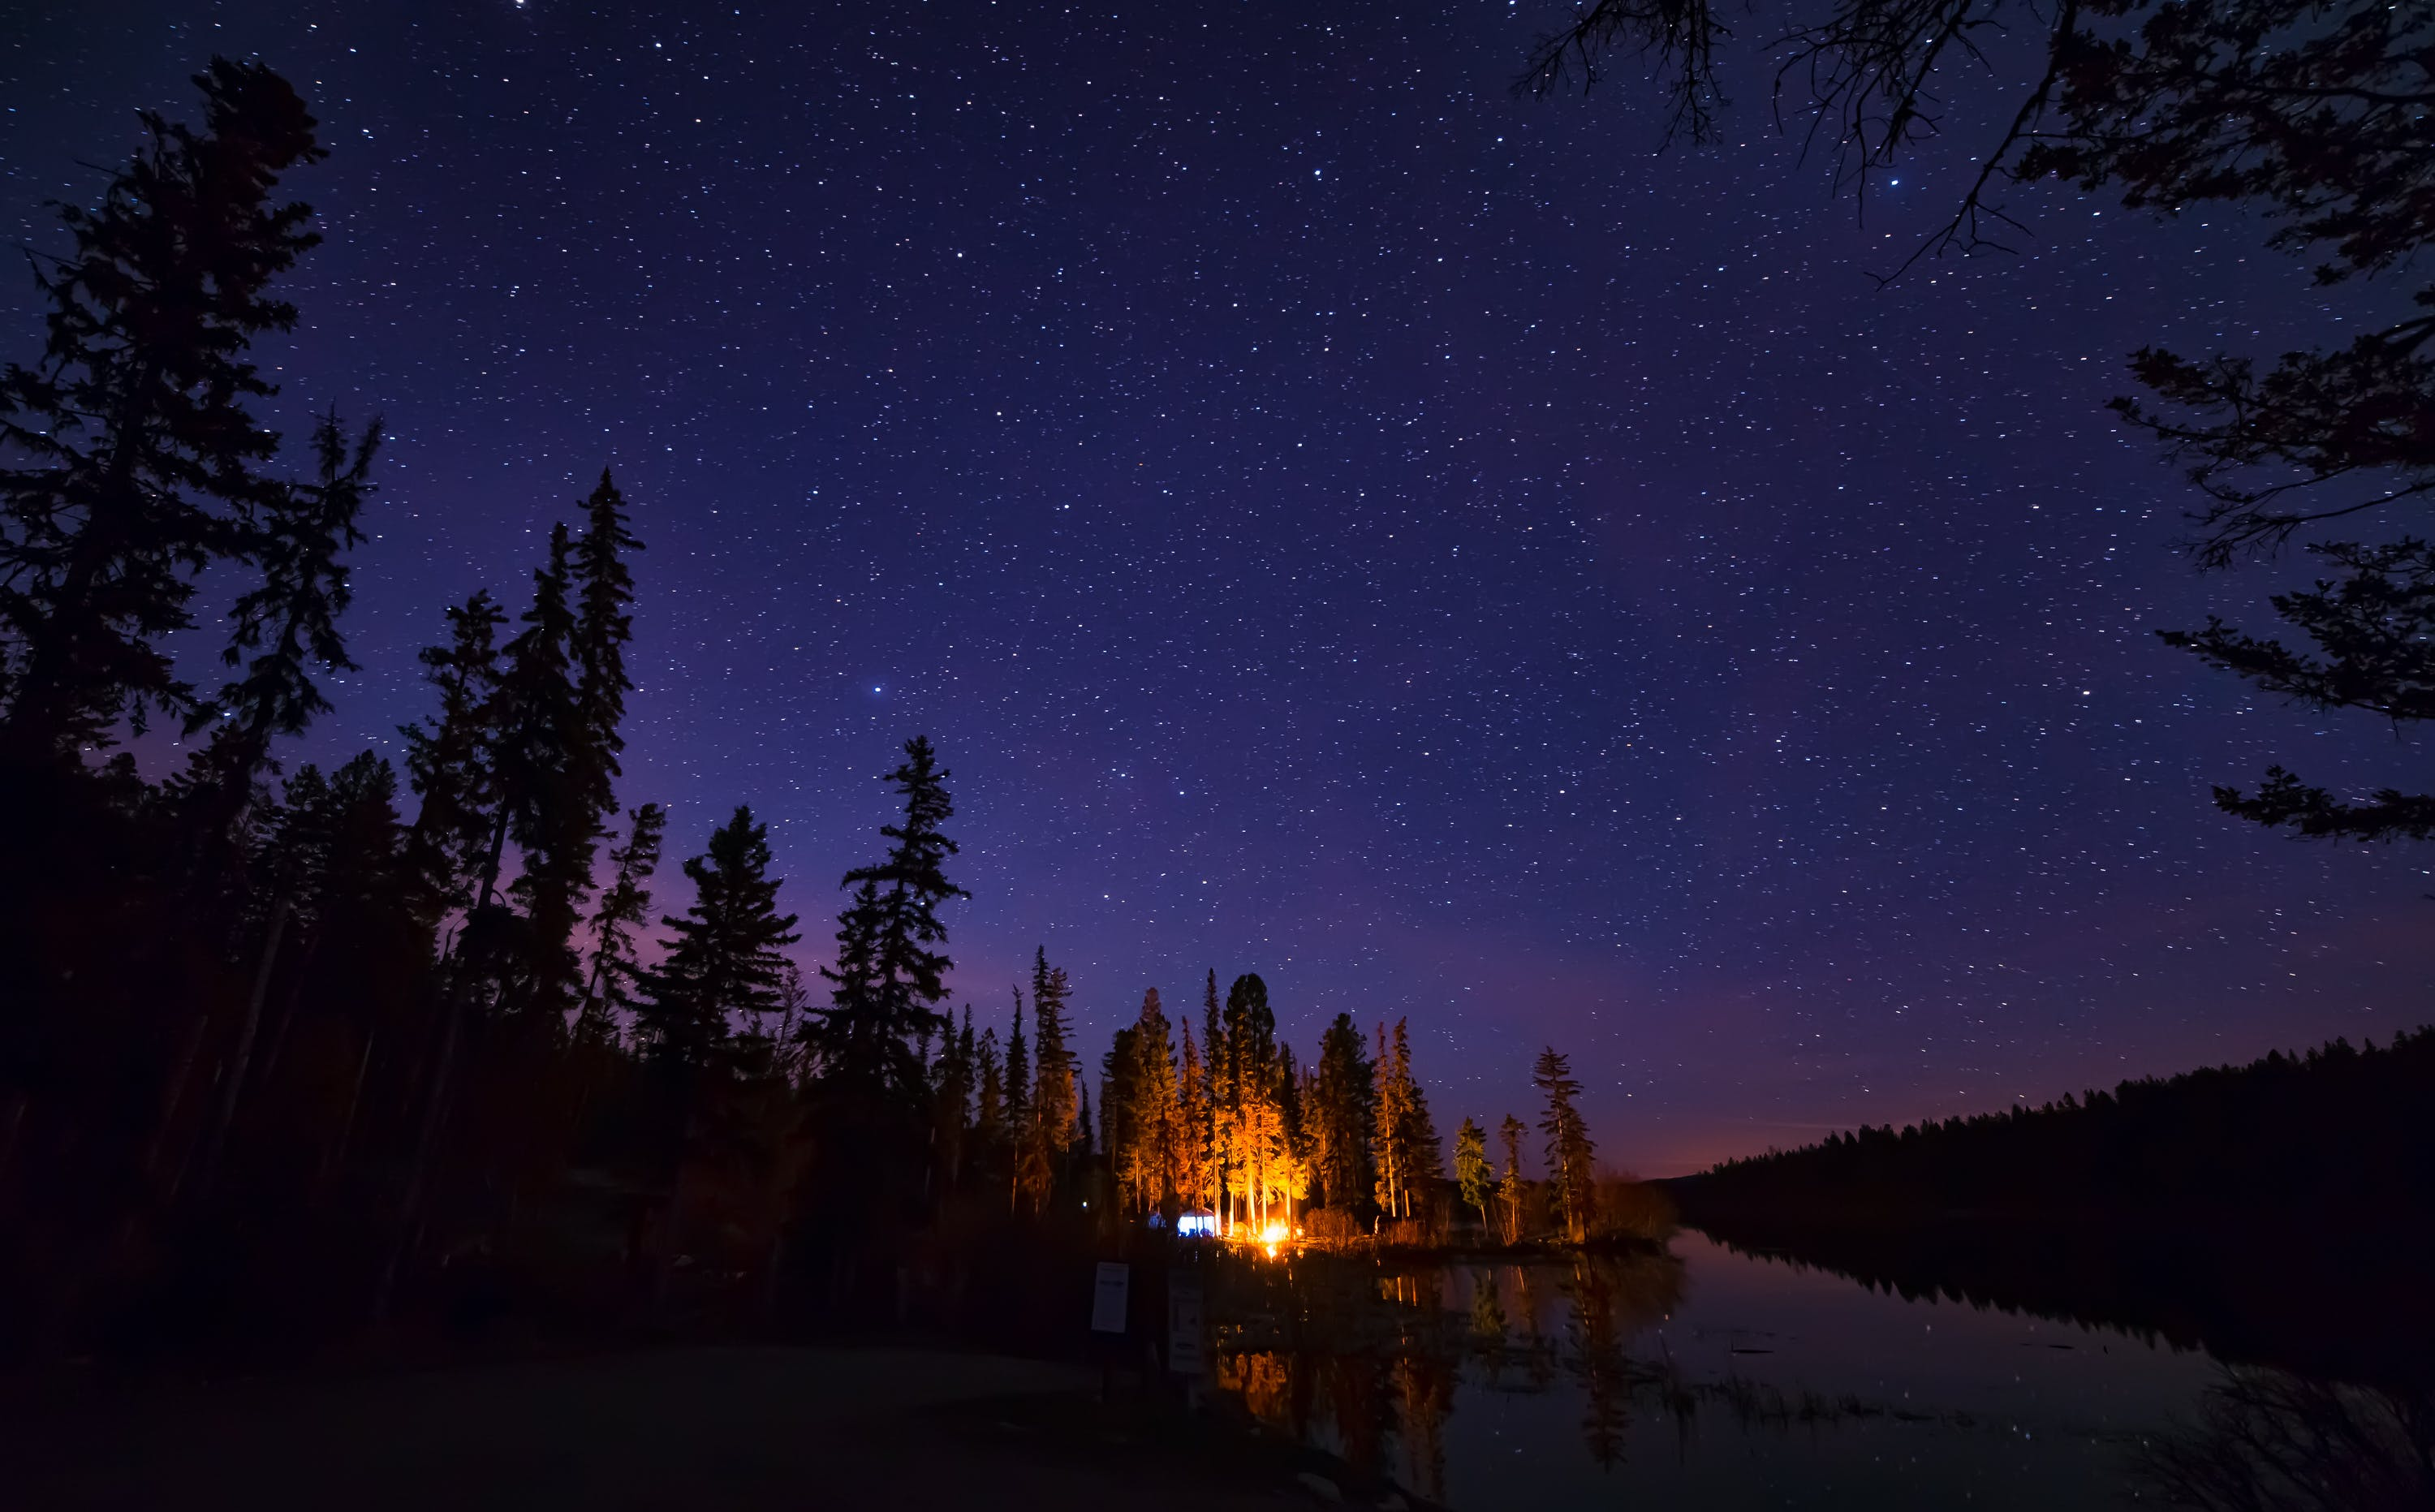 Pine Trees Under Starry Night Sky